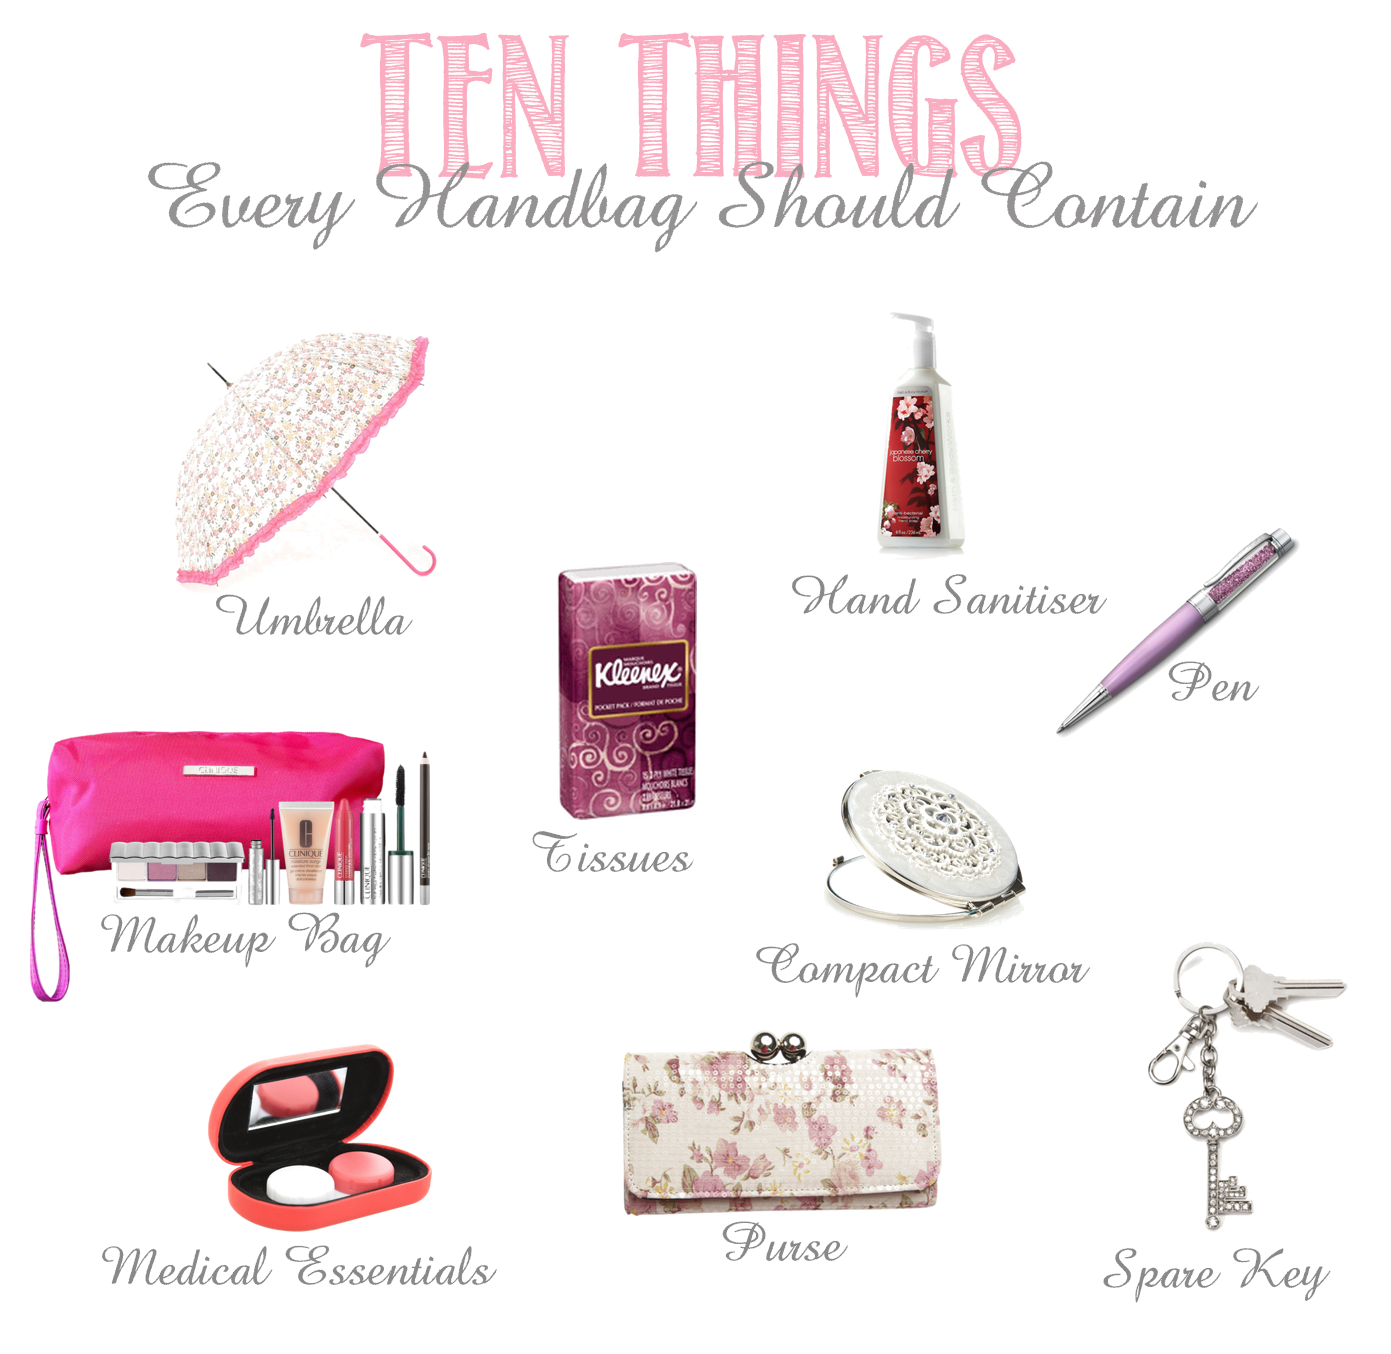 ten items that every woman's handbag should contain